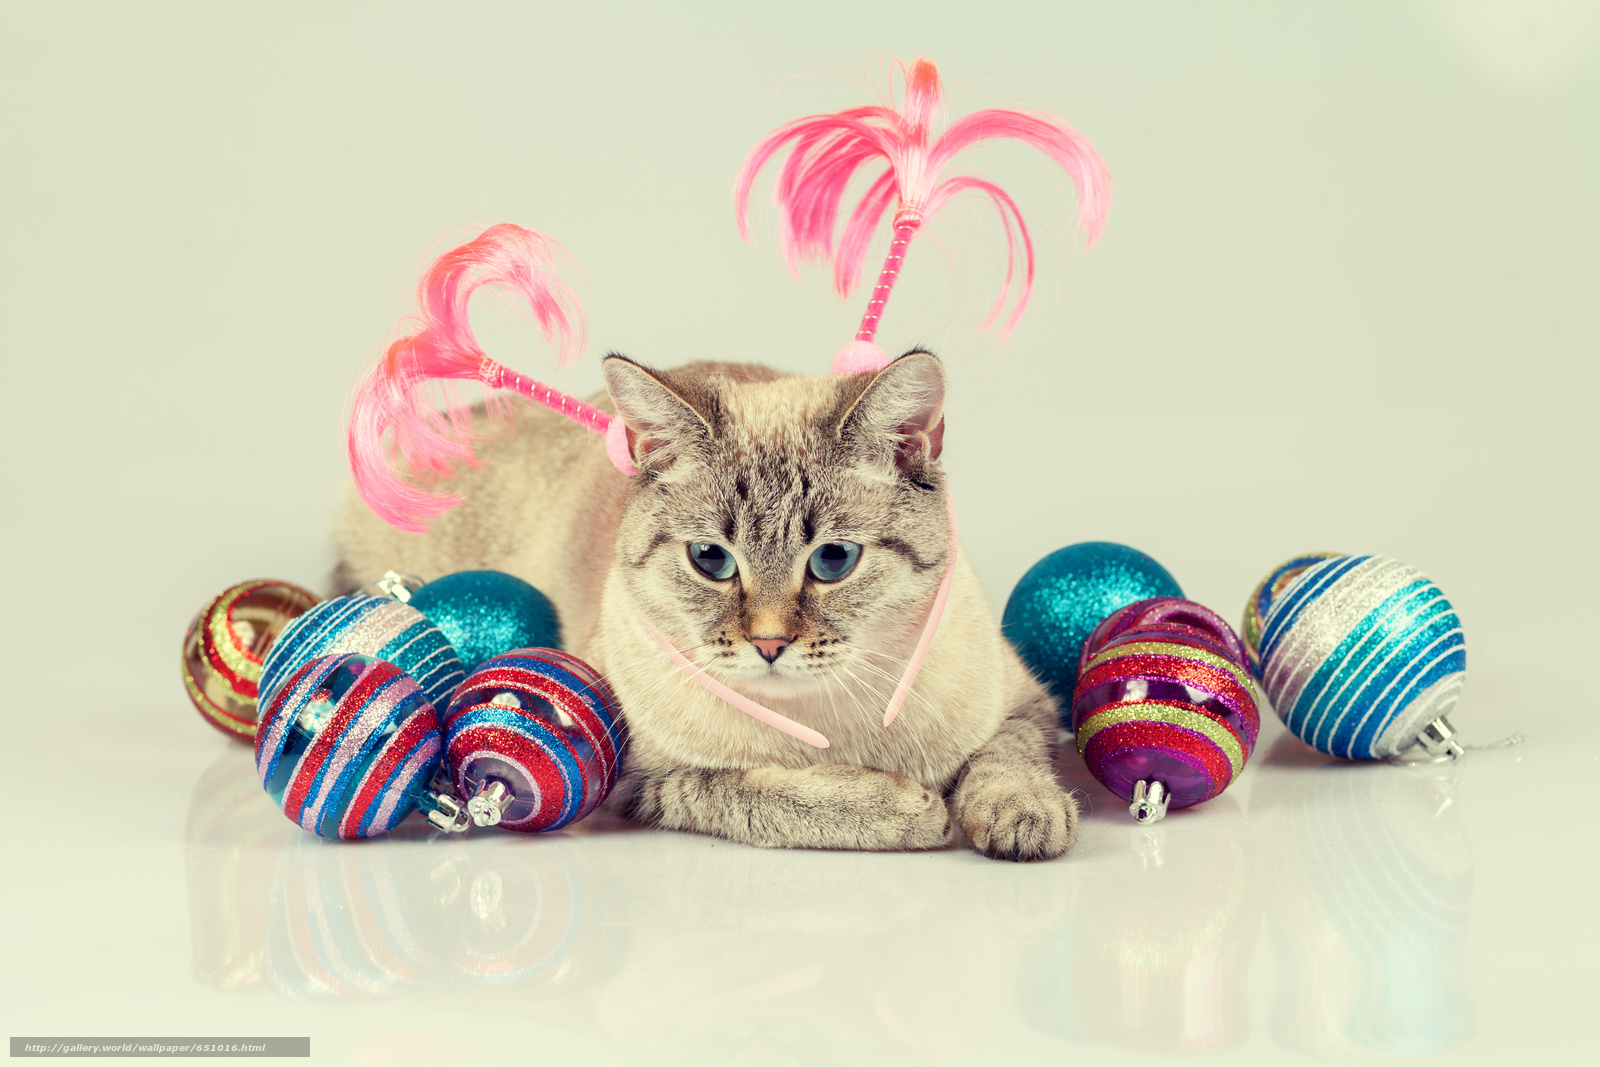 Download wallpaper COTE,  cat,  Balls,  Toys free desktop wallpaper in the resolution 5616x3744 — picture №651016